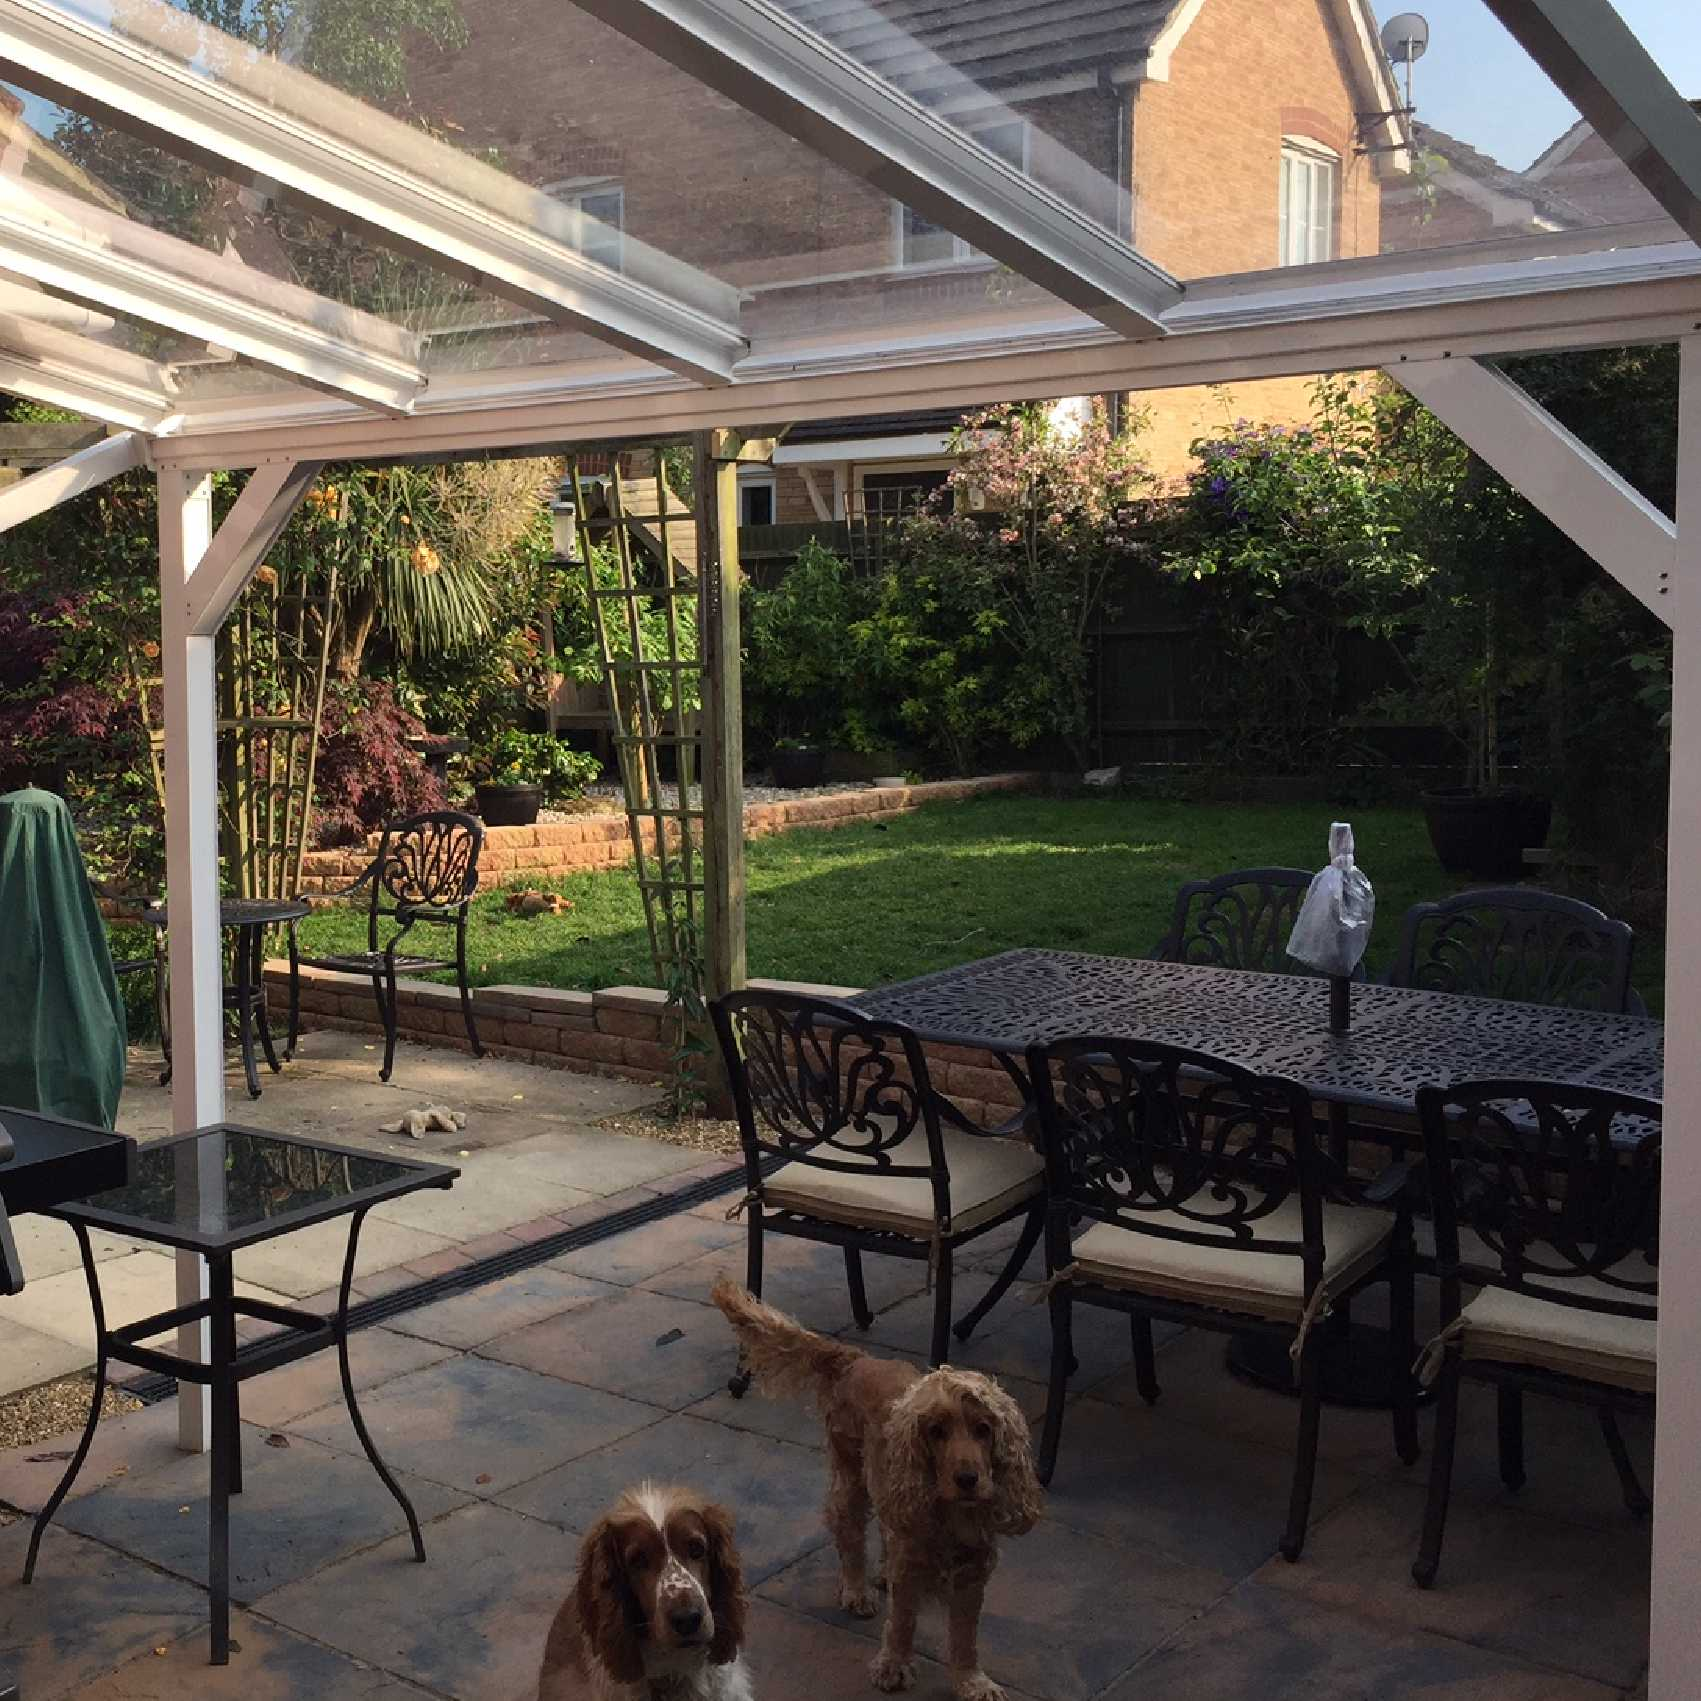 Affordable Omega Smart White Lean-To Canopy with 6mm Glass Clear Plate Polycarbonate Glazing - 7.7m (W) x 3.0m (P), (4) Supporting Posts